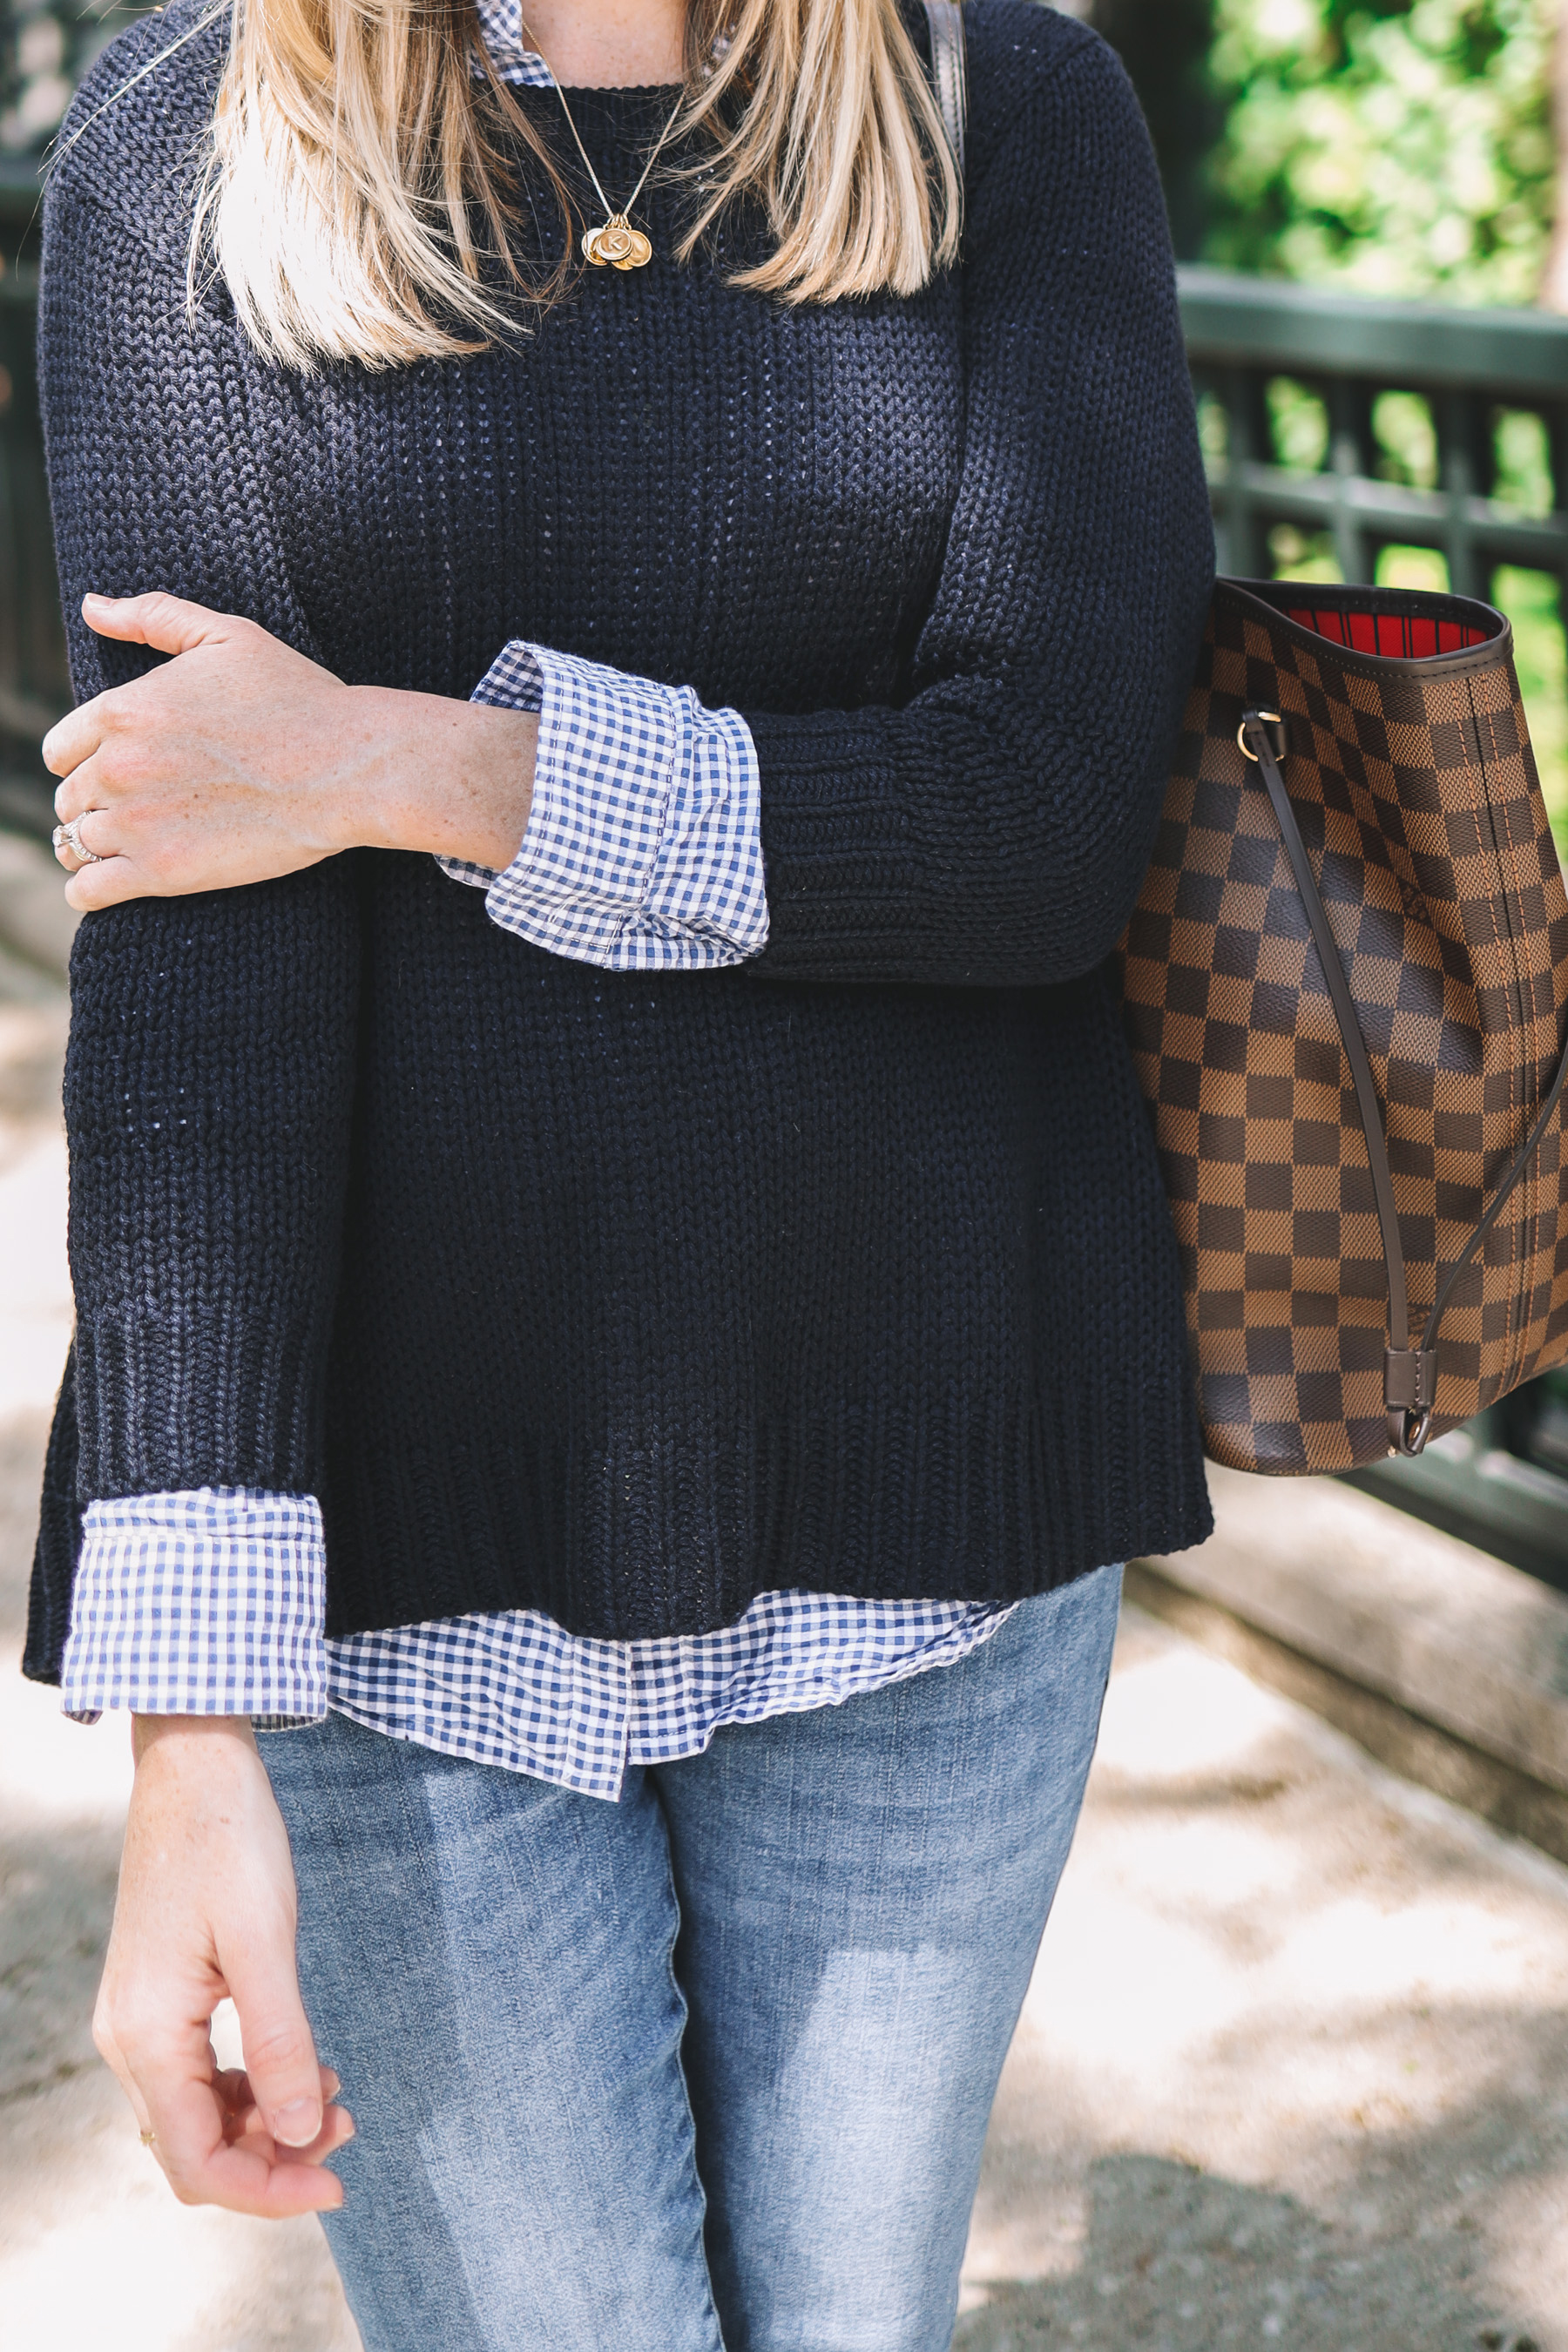 Kely's outfit details: Maternity Jeans / Tuckernuck Bow Sweater / J.McLaughlin Gingham Button-Down / Louis Vuitton Neverfull GM